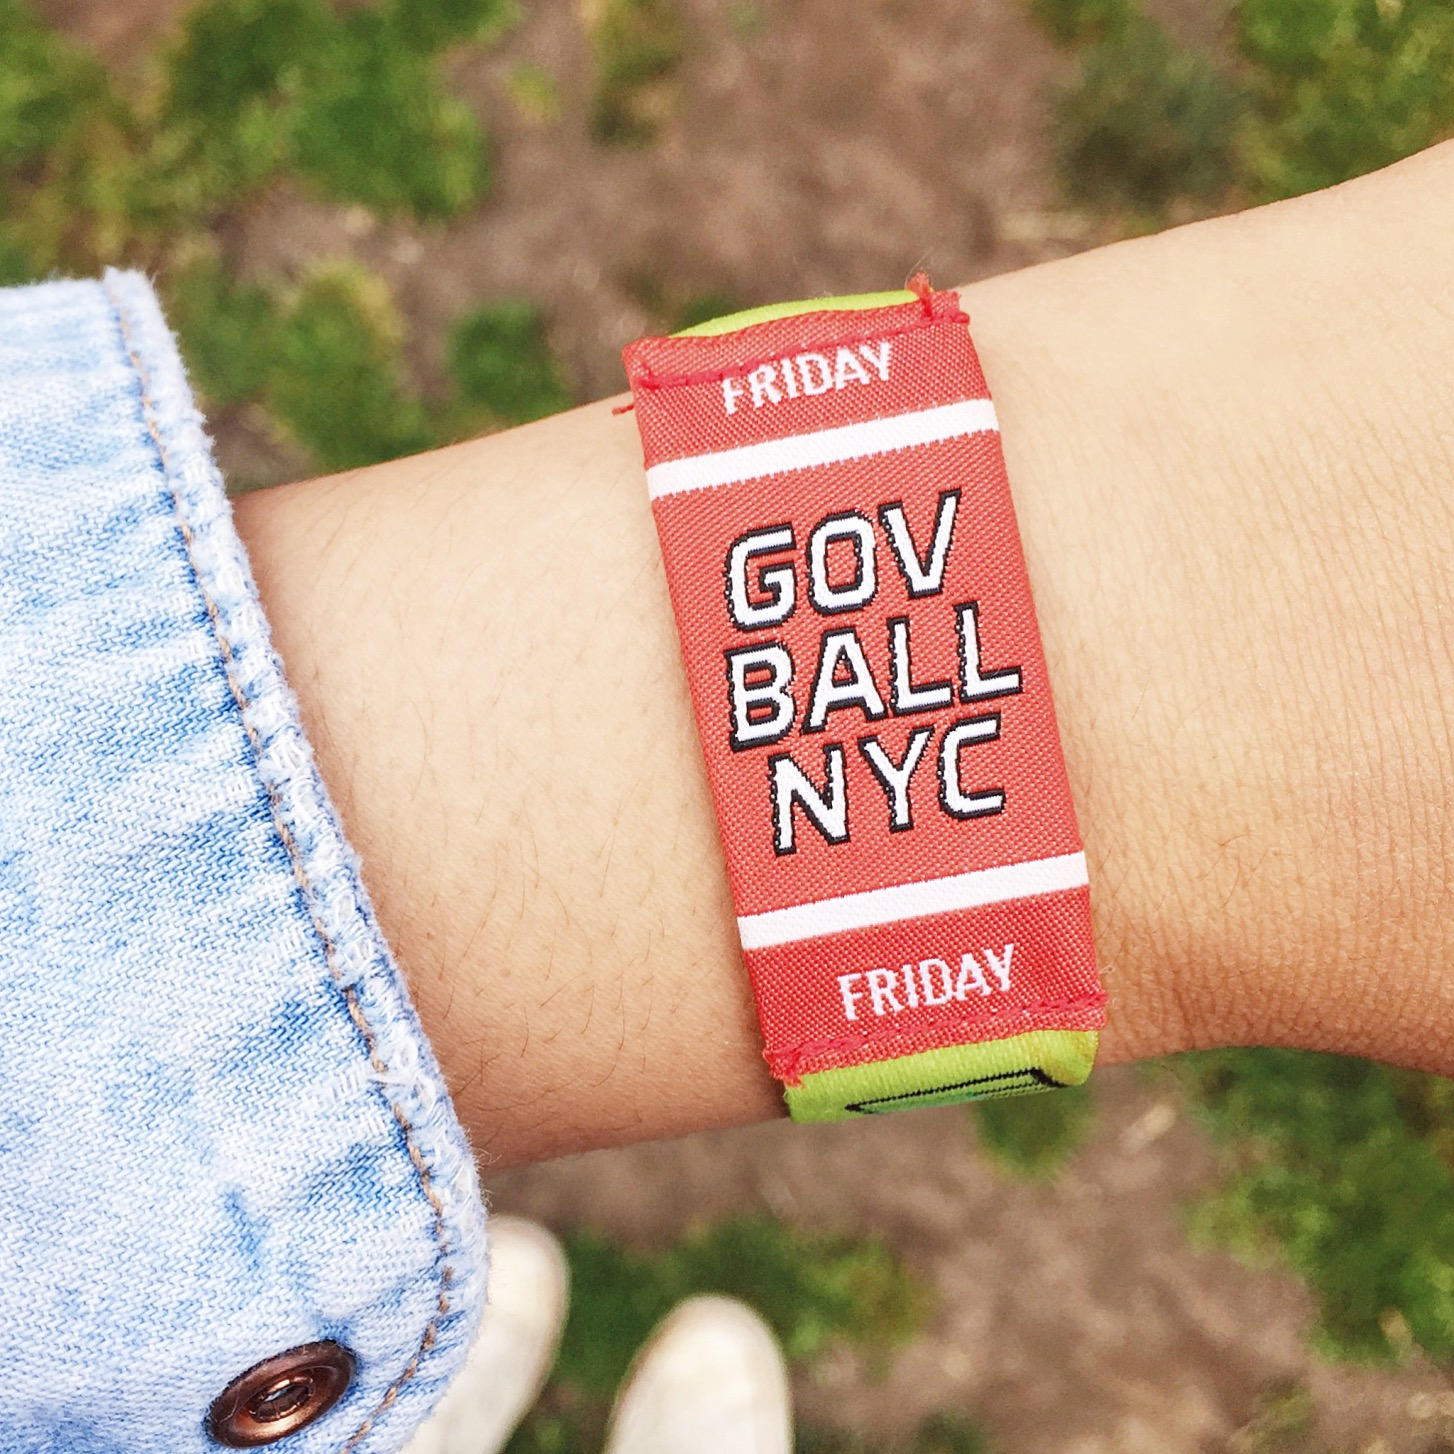 Admission wristband for Friday